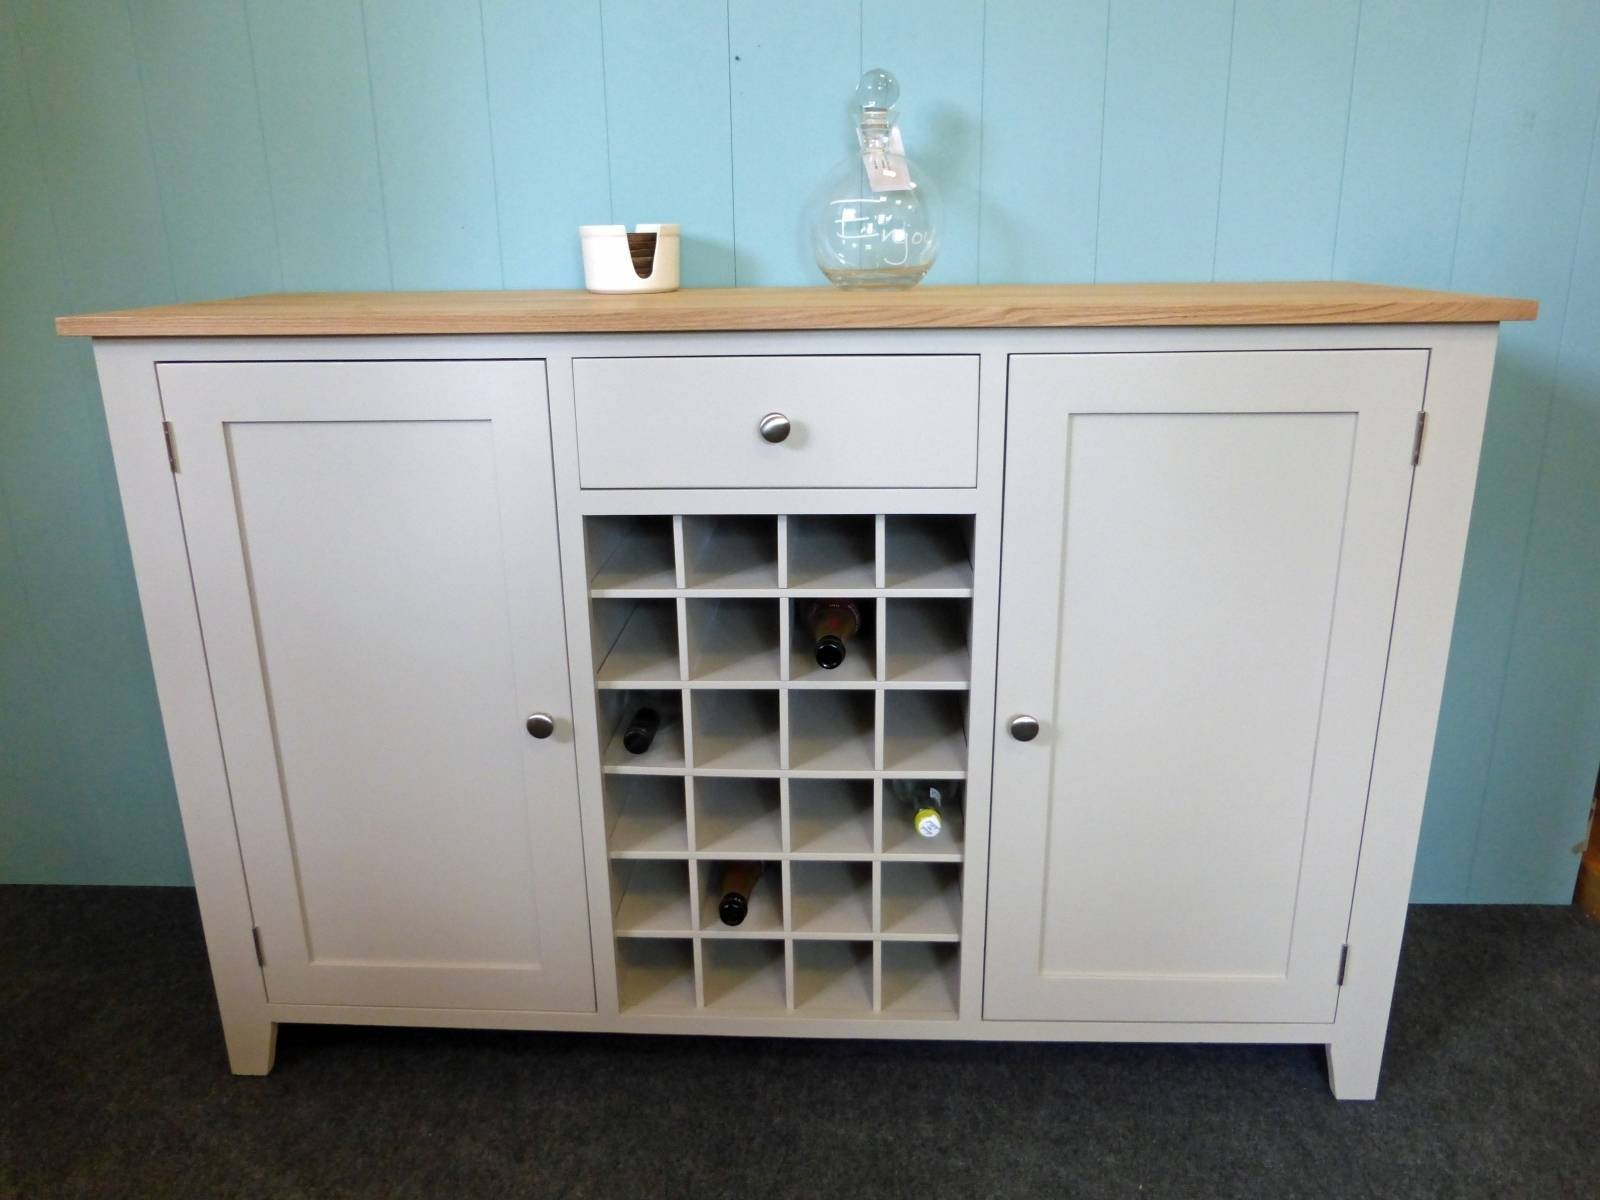 Painted Shaker Style Sideboard With Wine Rack - Painted Sideboards throughout Sideboards With Wine Racks (Image 15 of 30)